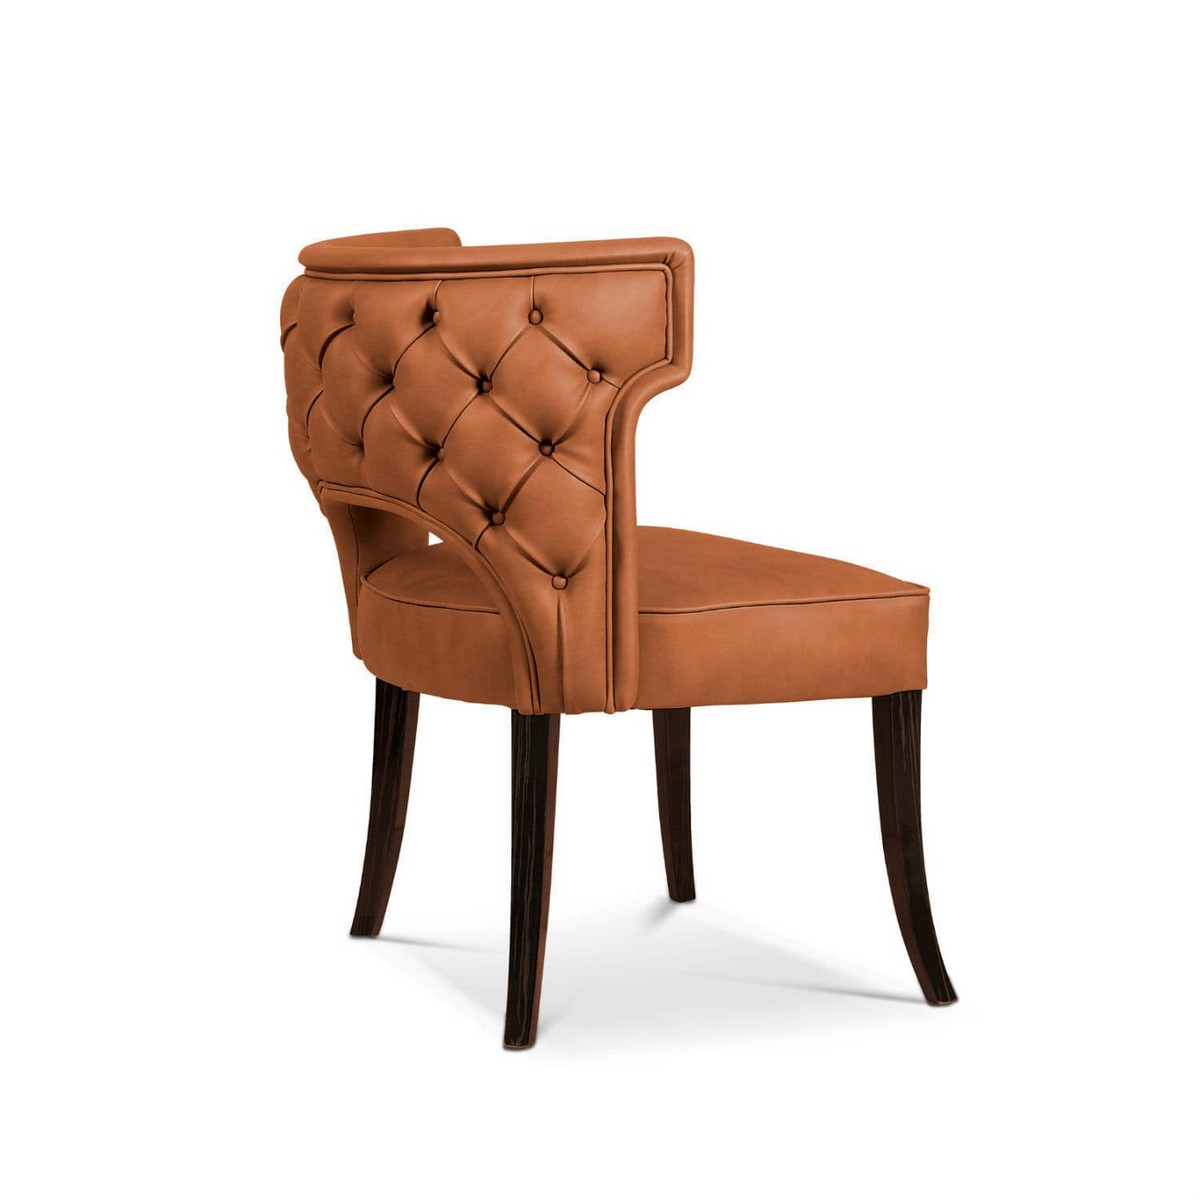 Accent Dining Chairs You Should Look Out For This Season accent dining chairs Accent Dining Chairs You Should Look Out For This Season kansas2